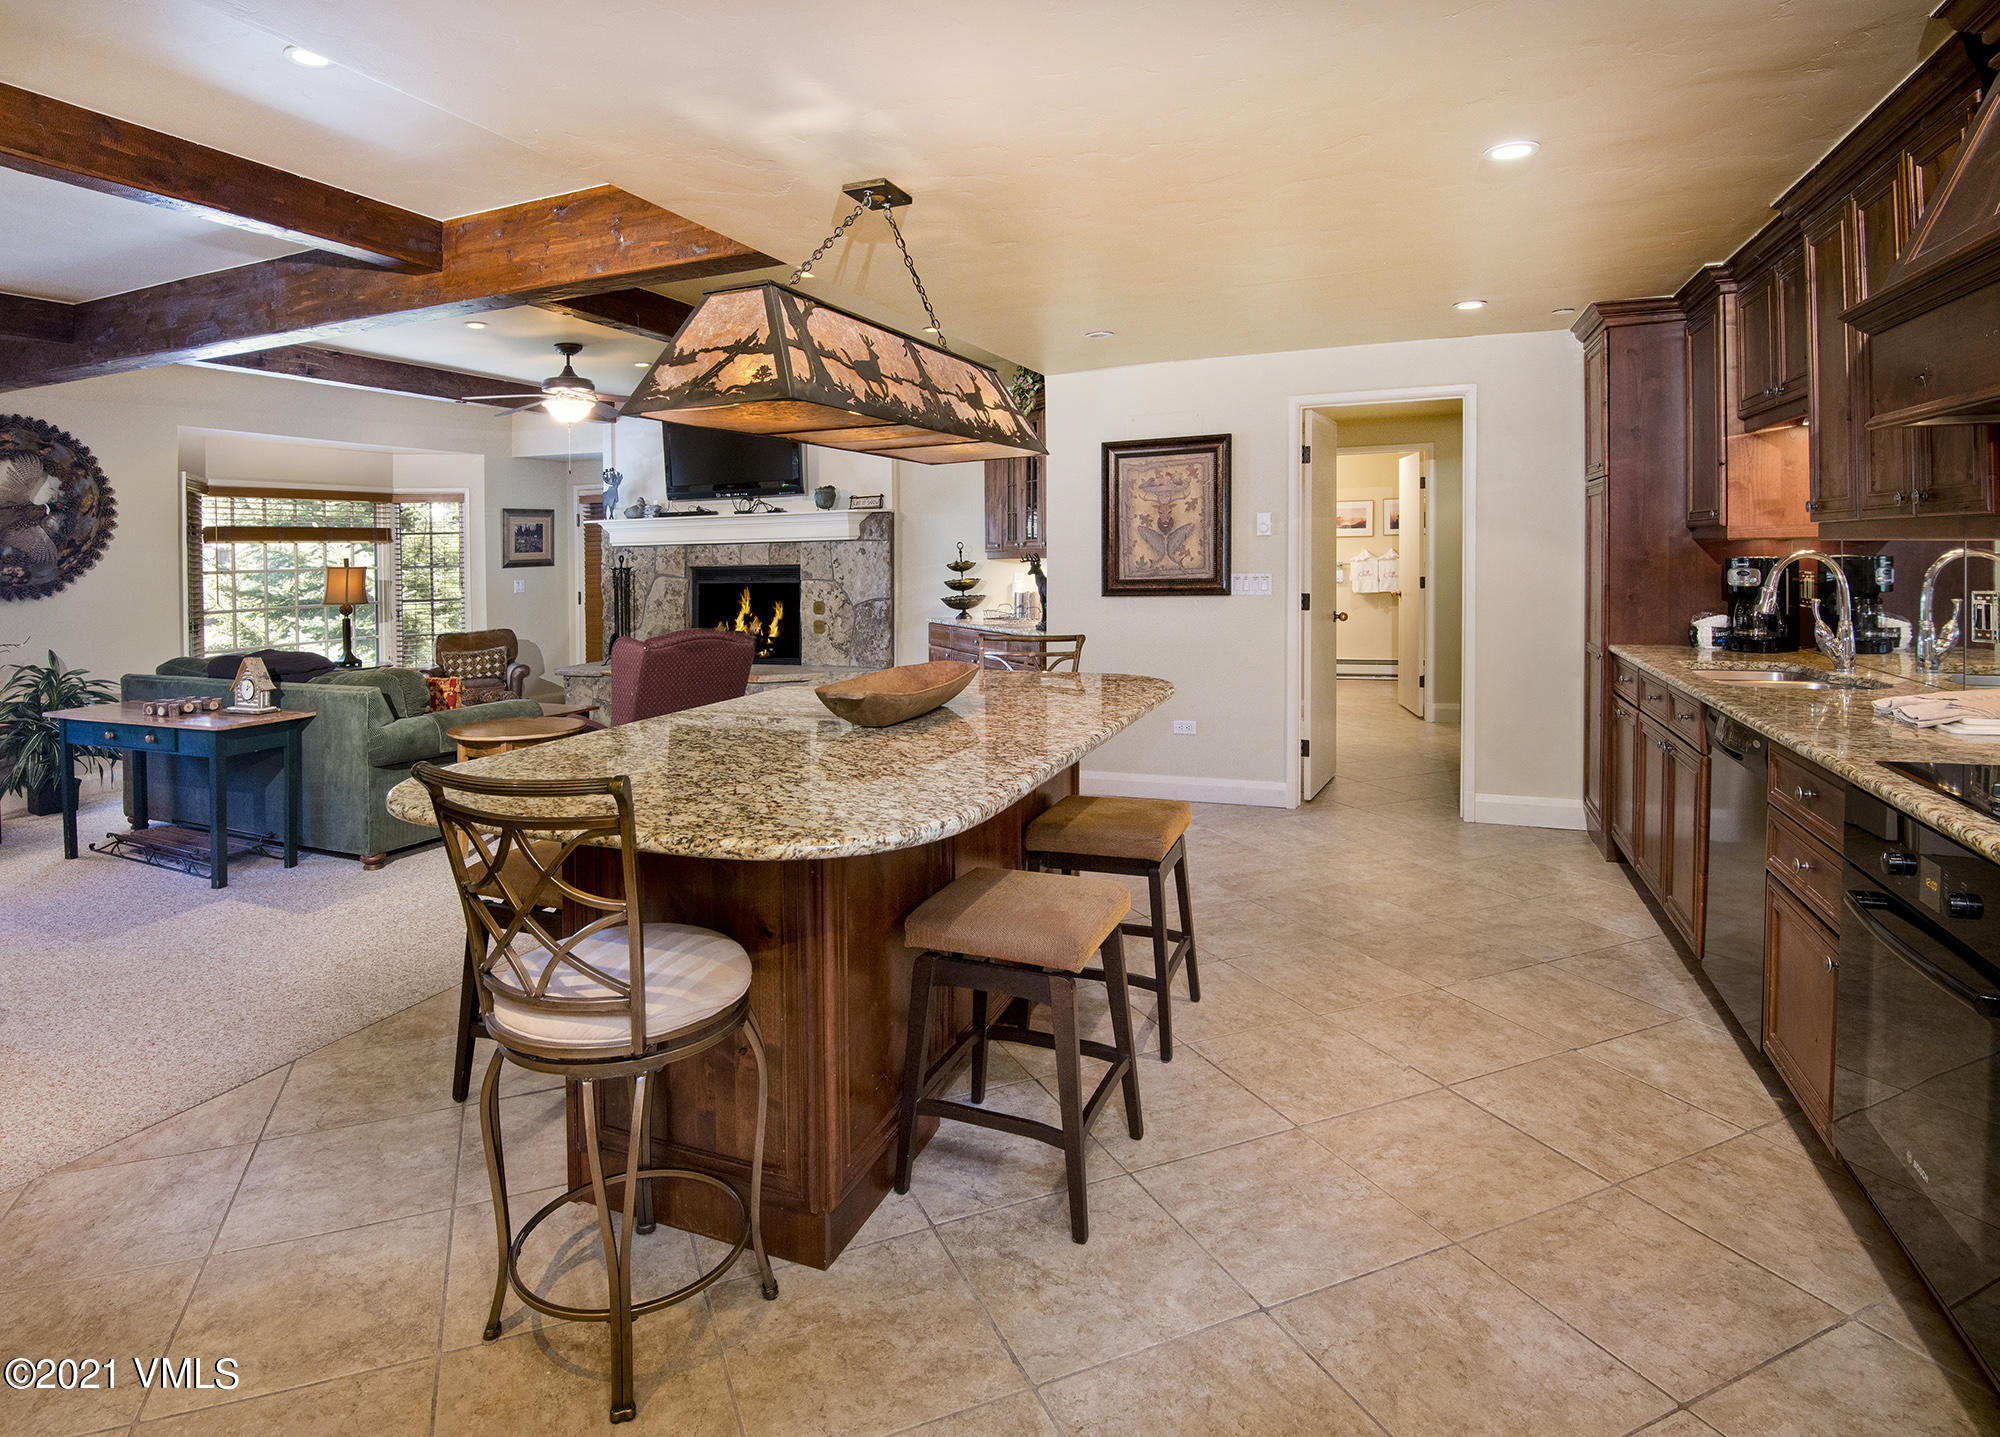 Extremely rare true 4 bedroom 5 bath in The Charter with 2 lockoffs. Slab granite kitchen counters and center island with updated baths and room for everyone in the expanded great room. Features include 2 wood-burning fireplaces and fully furnished. Amenity rich Charter at Beaver Creek offers a full service Spa, indoor and outdoor pools, hot tubs, and state-of-the-art fitness facility. Has not been rented but would do very well. Rental projections available